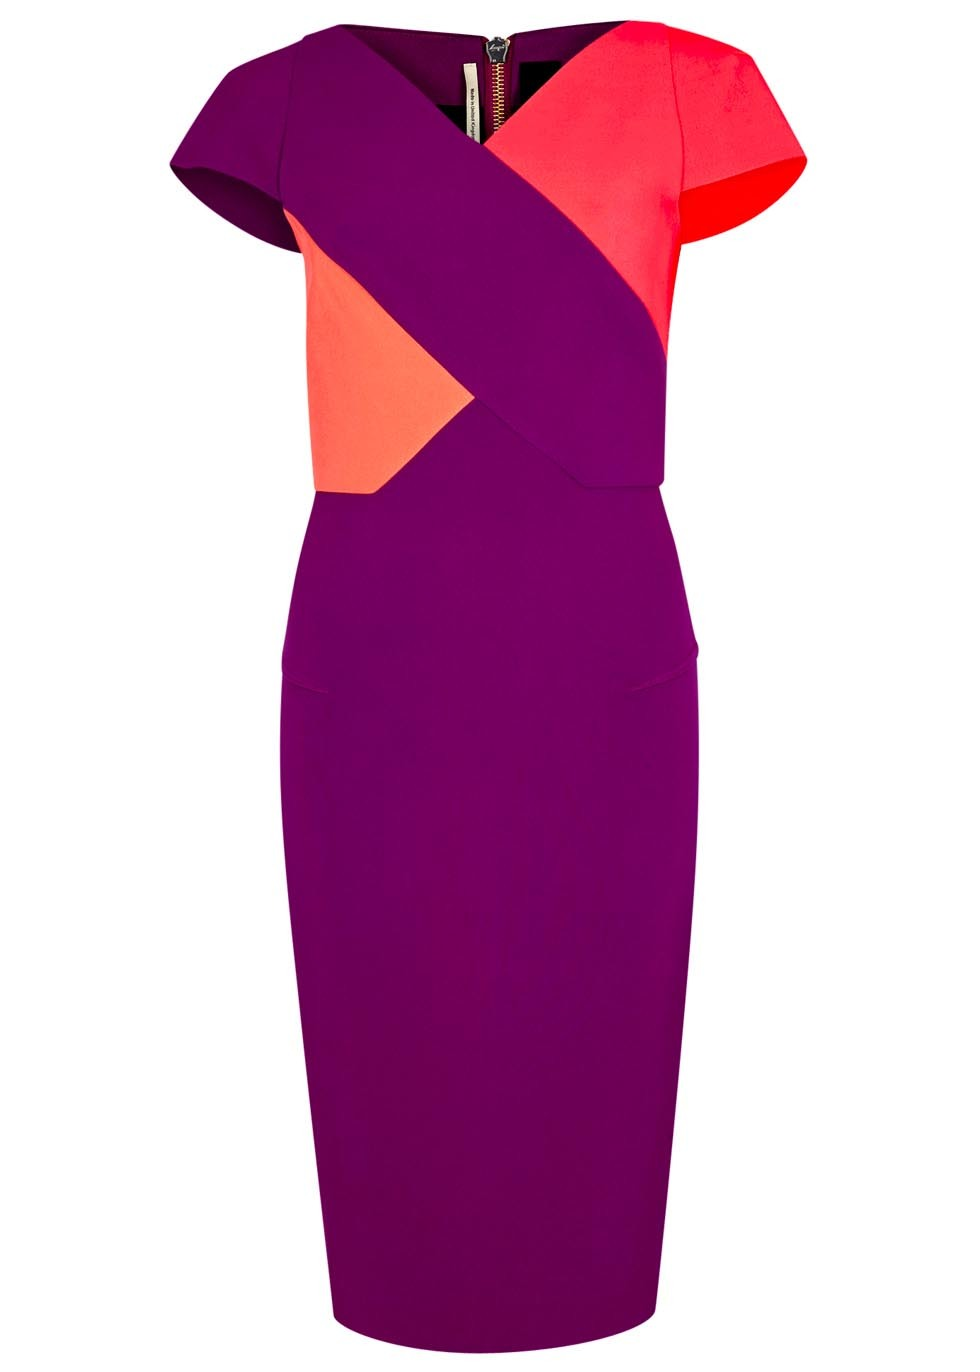 Tournay Tri Tone Dress - style: shift; neckline: v-neck; sleeve style: capped; fit: tailored/fitted; hip detail: draws attention to hips; predominant colour: magenta; secondary colour: coral; occasions: evening, occasion; length: on the knee; fibres: polyester/polyamide - 100%; sleeve length: short sleeve; texture group: crepes; pattern type: fabric; pattern size: standard; pattern: colourblock; season: s/s 2016; wardrobe: event